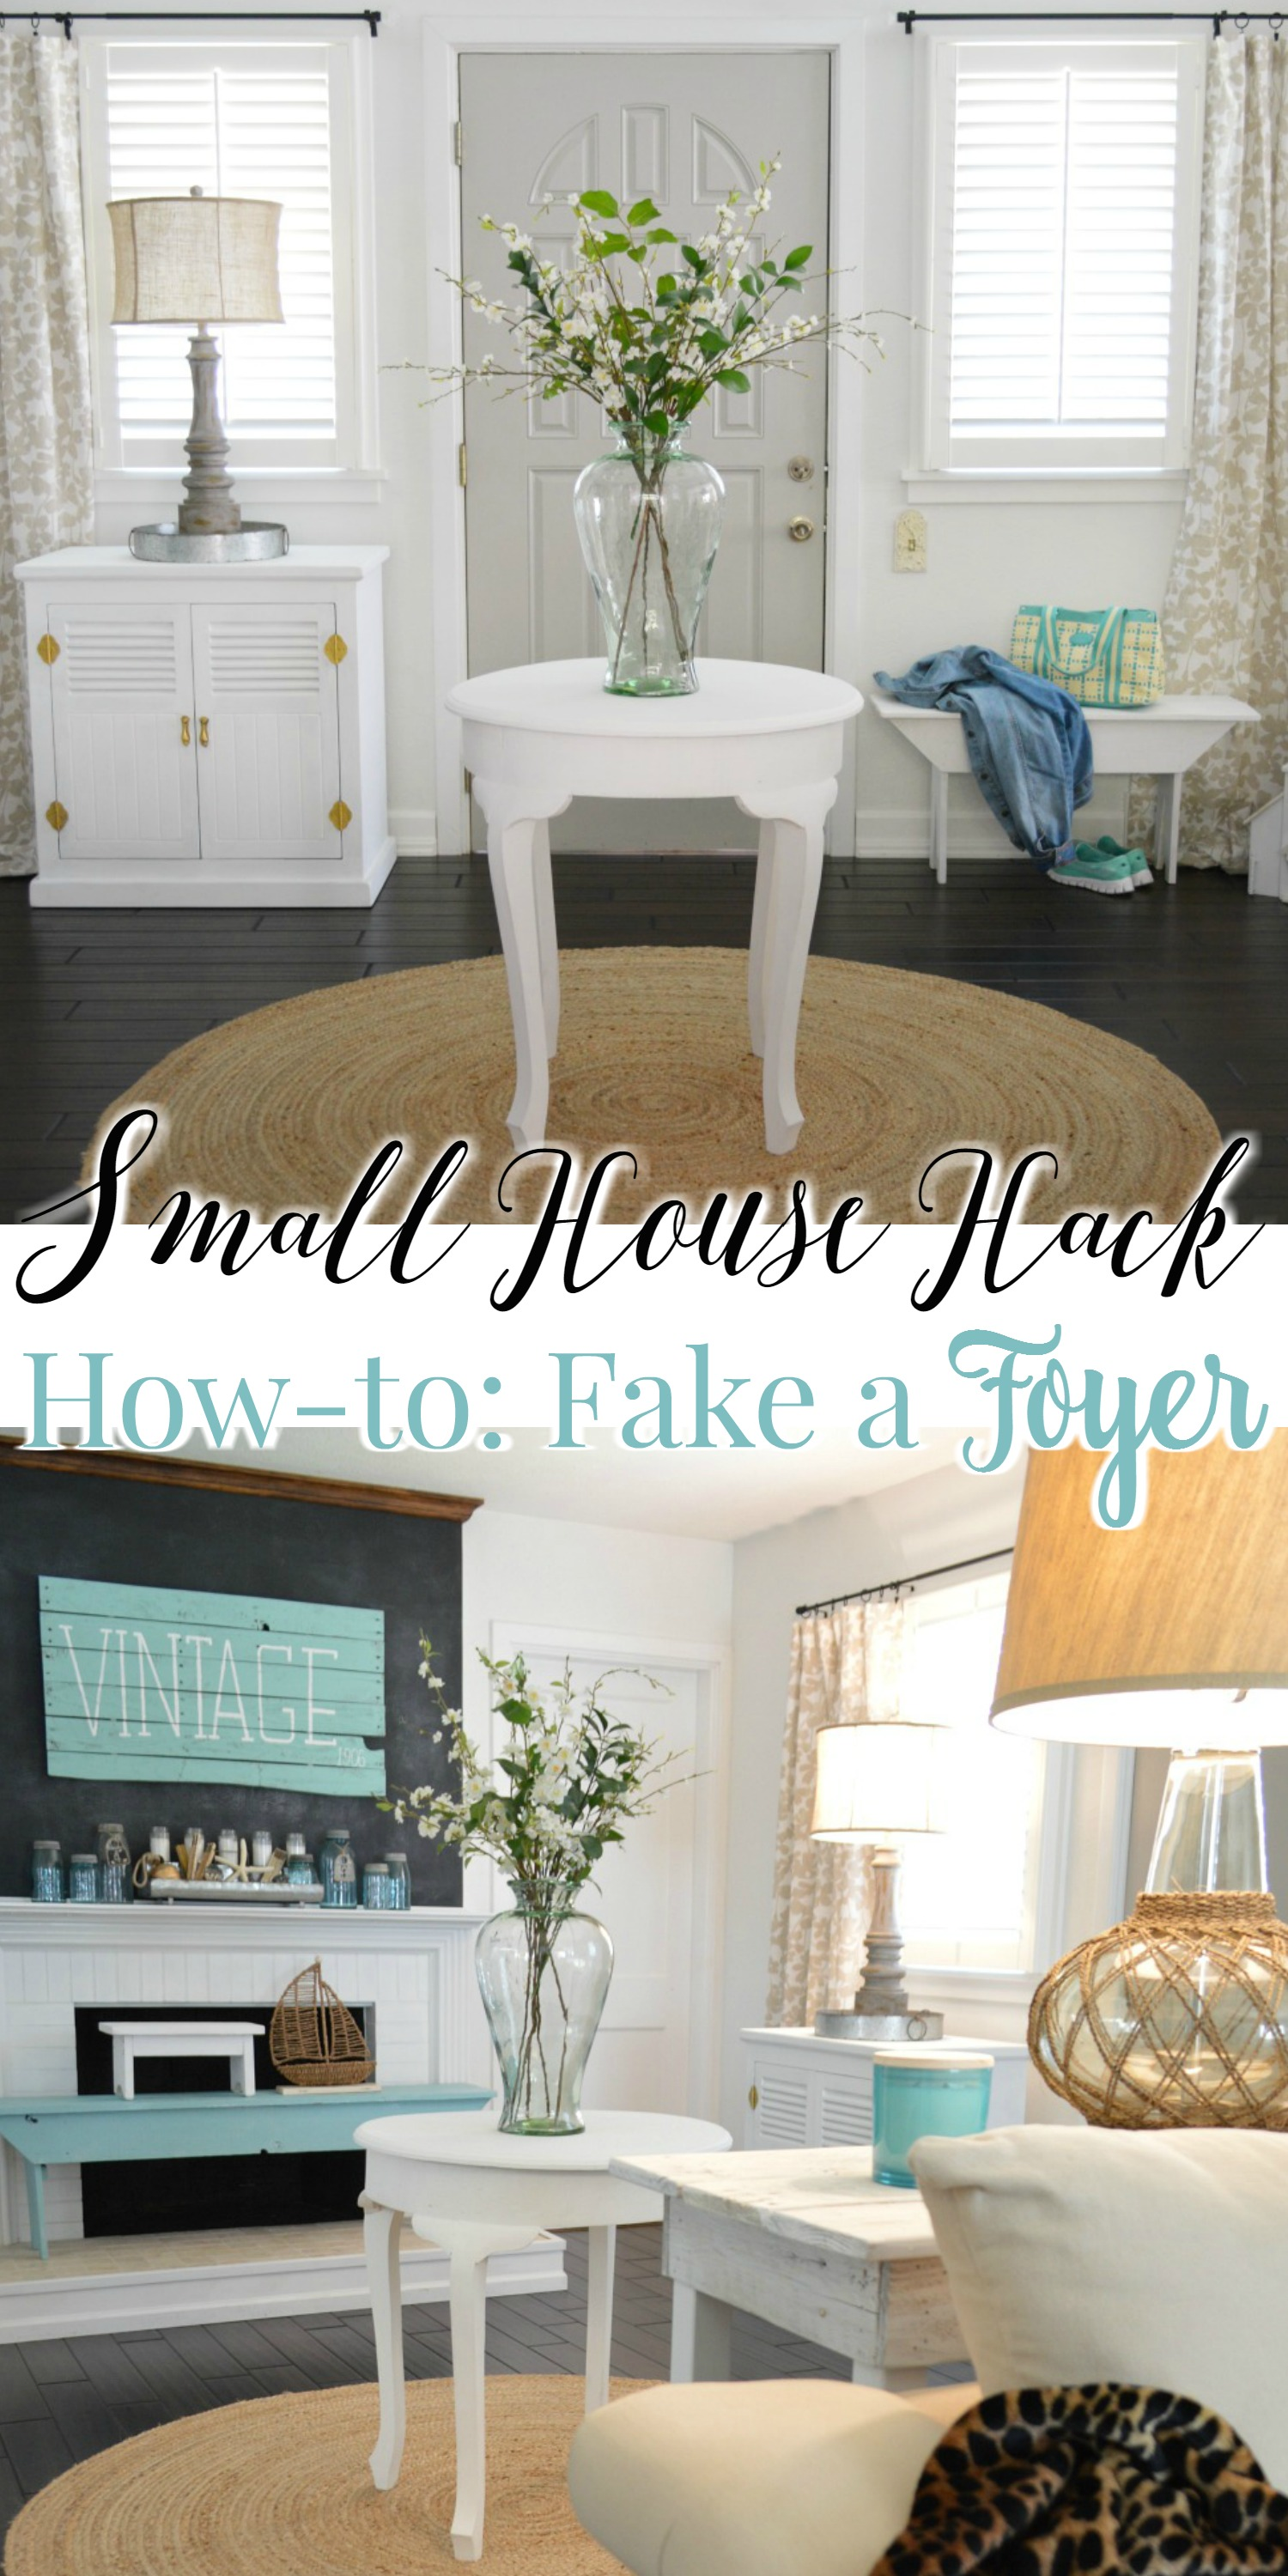 Spring Cottage Home Tour. Faux Foyer, little house hack. Small house entryway.